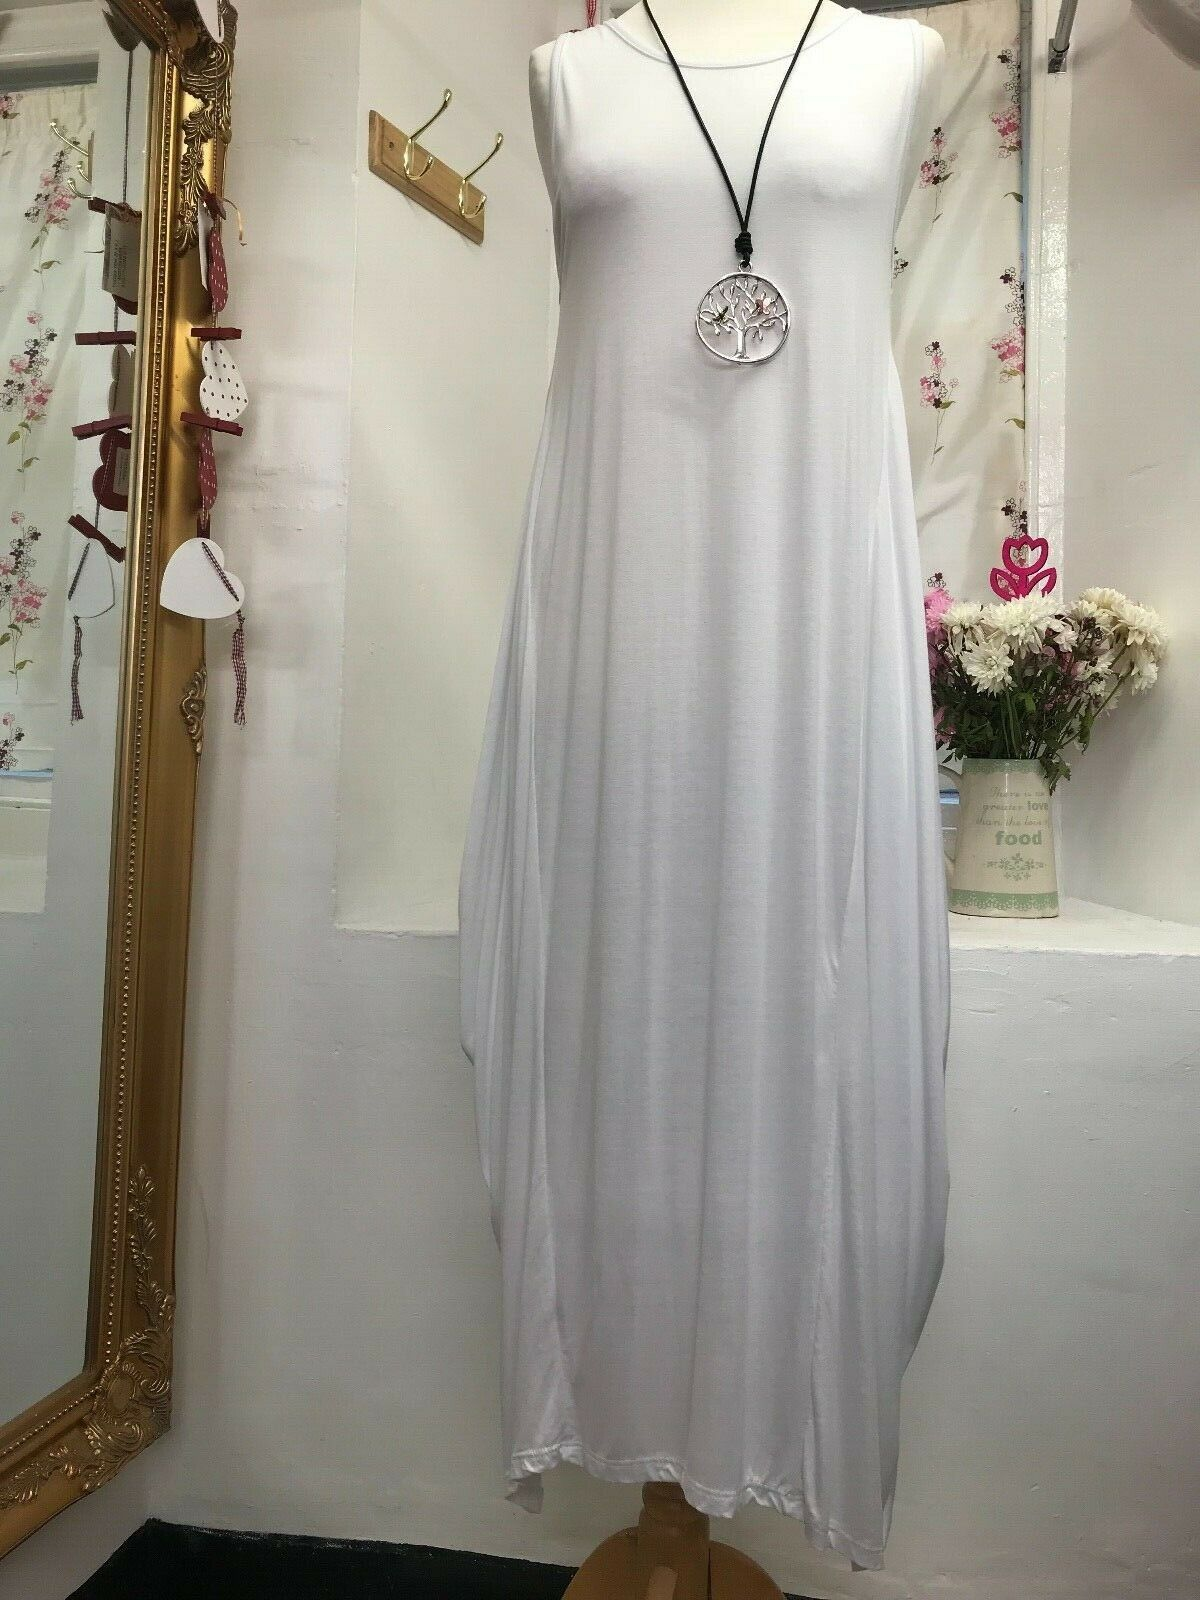 ITALIAN LAGENLOOK AMAZING QUIRKY BOHO LONG WHITE DRESS SIZE 14-18